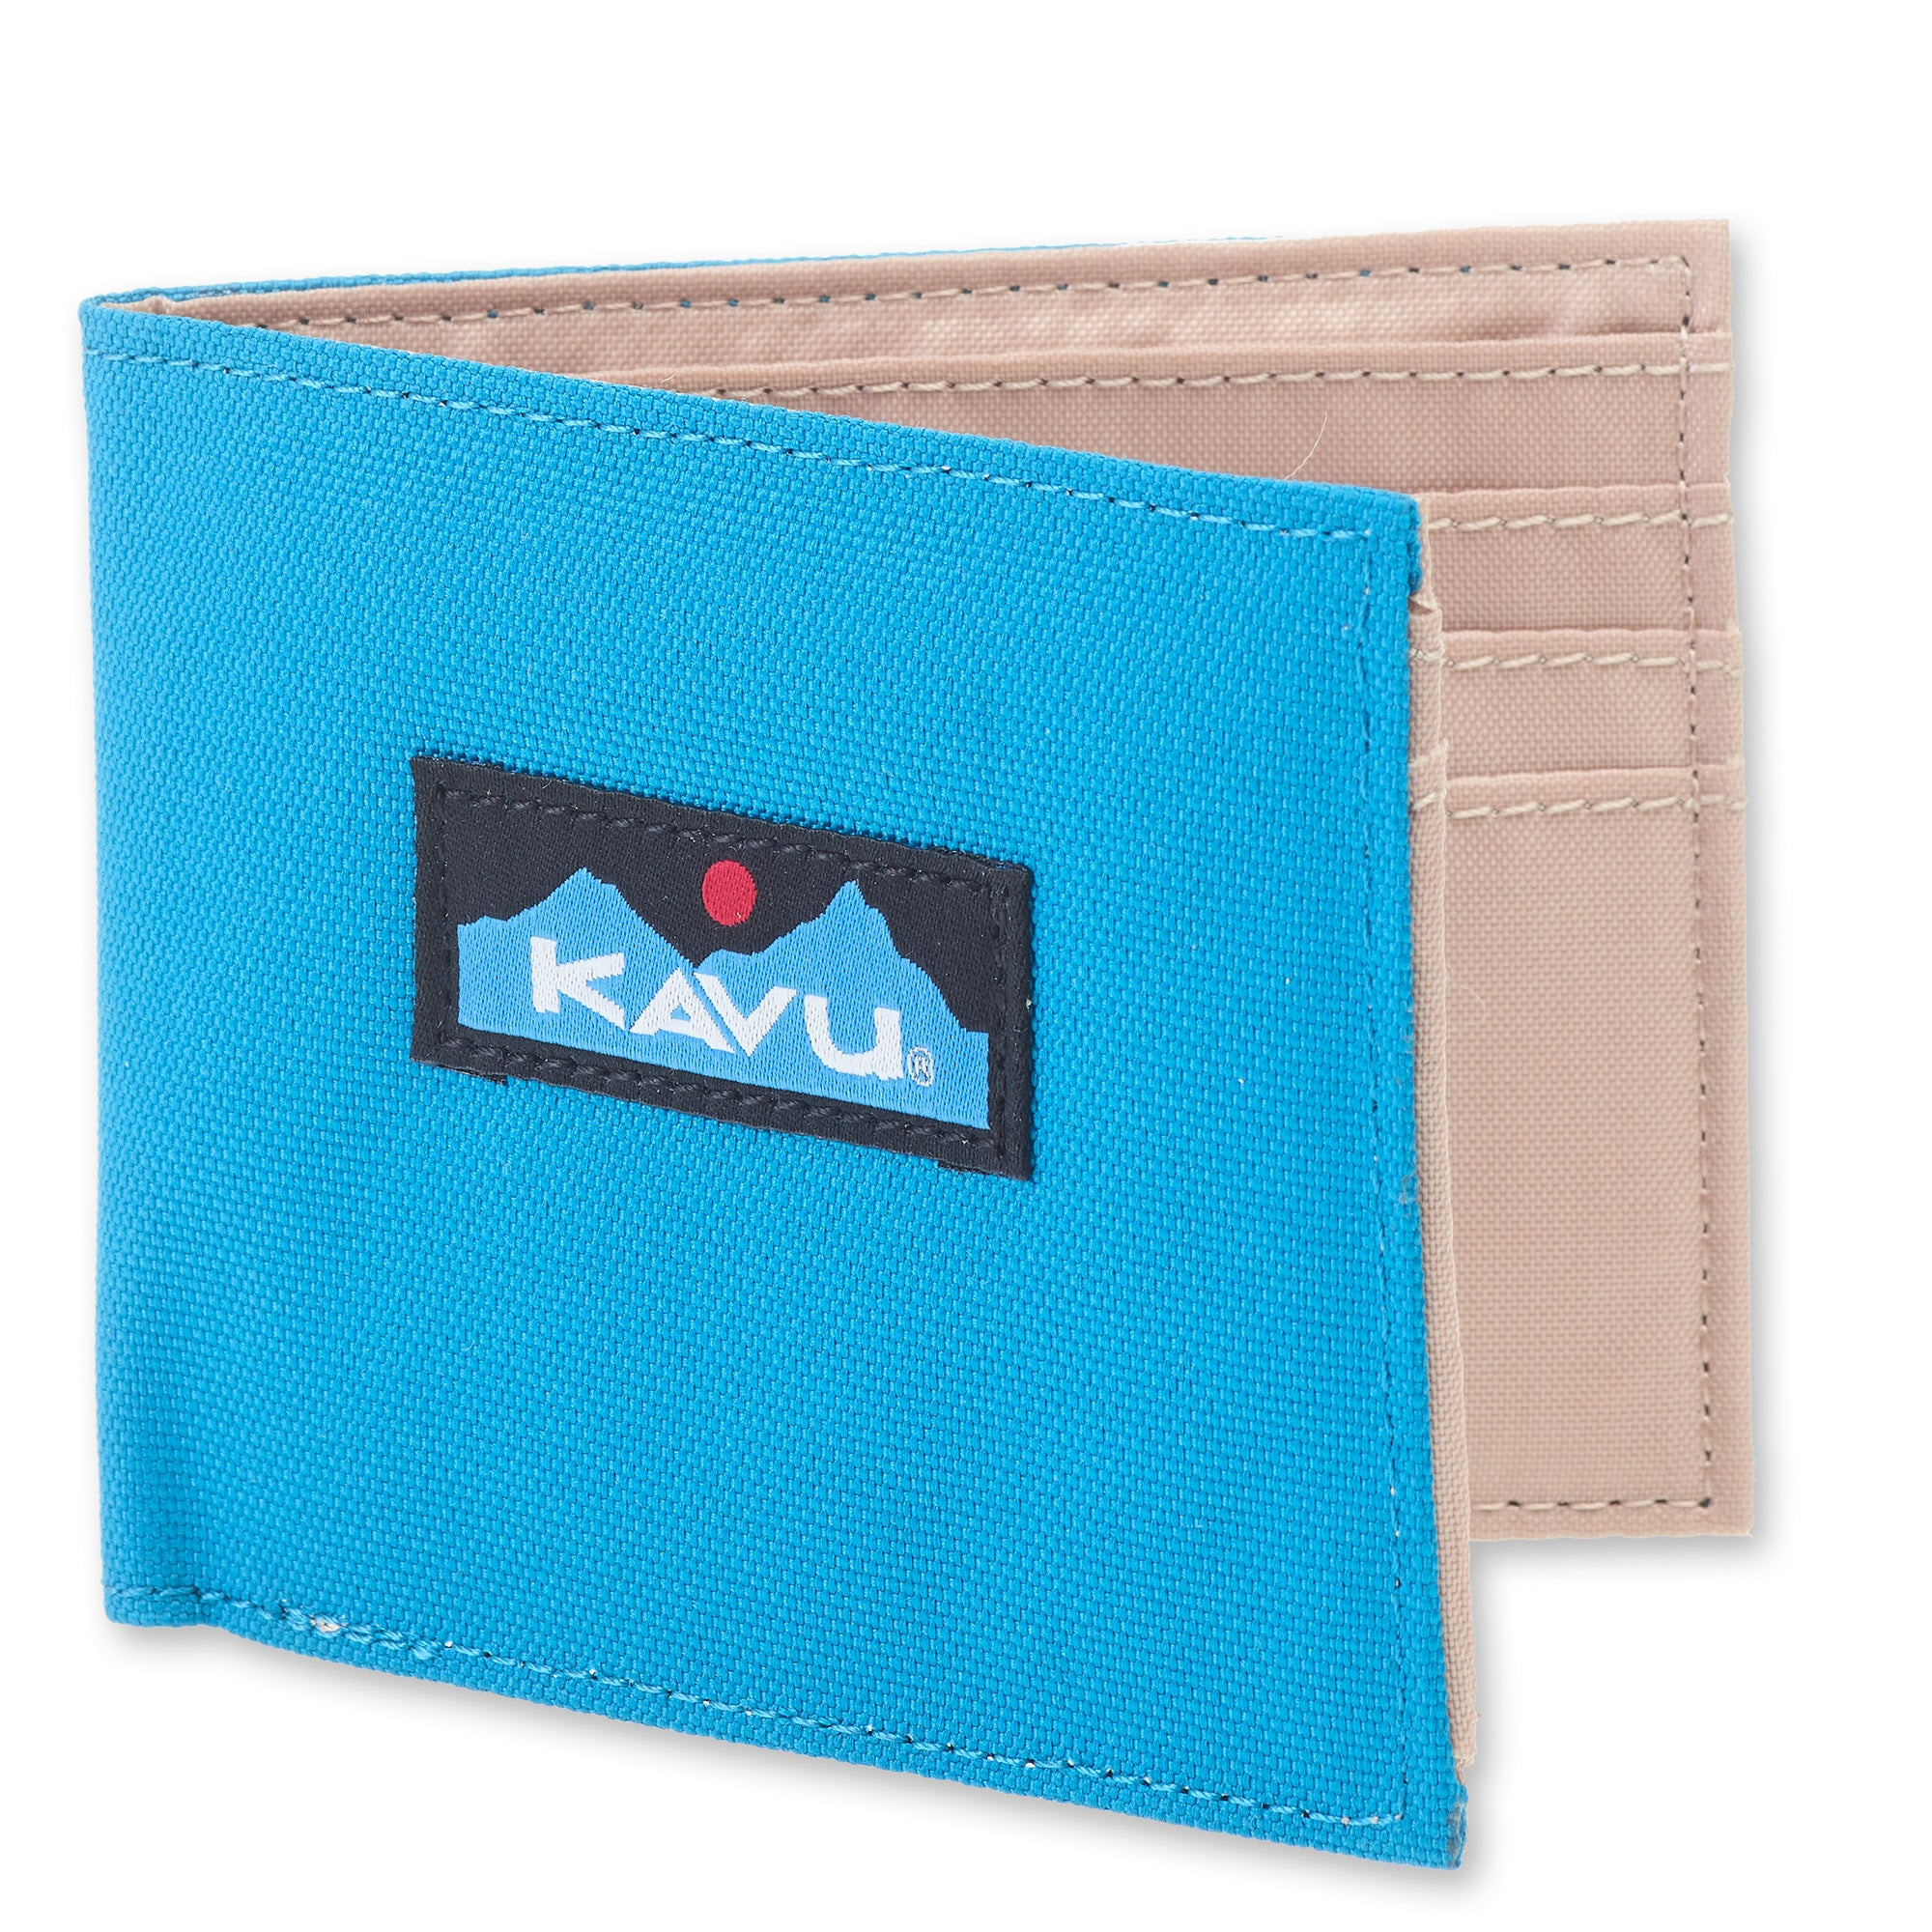 KAVU Roamer Wallet - Final Sale